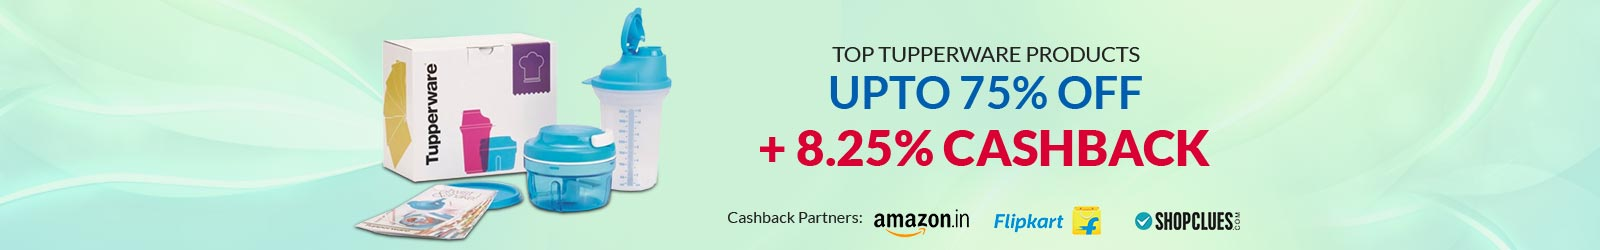 Tupperware Products Price List India: Upto 50% Off Offers